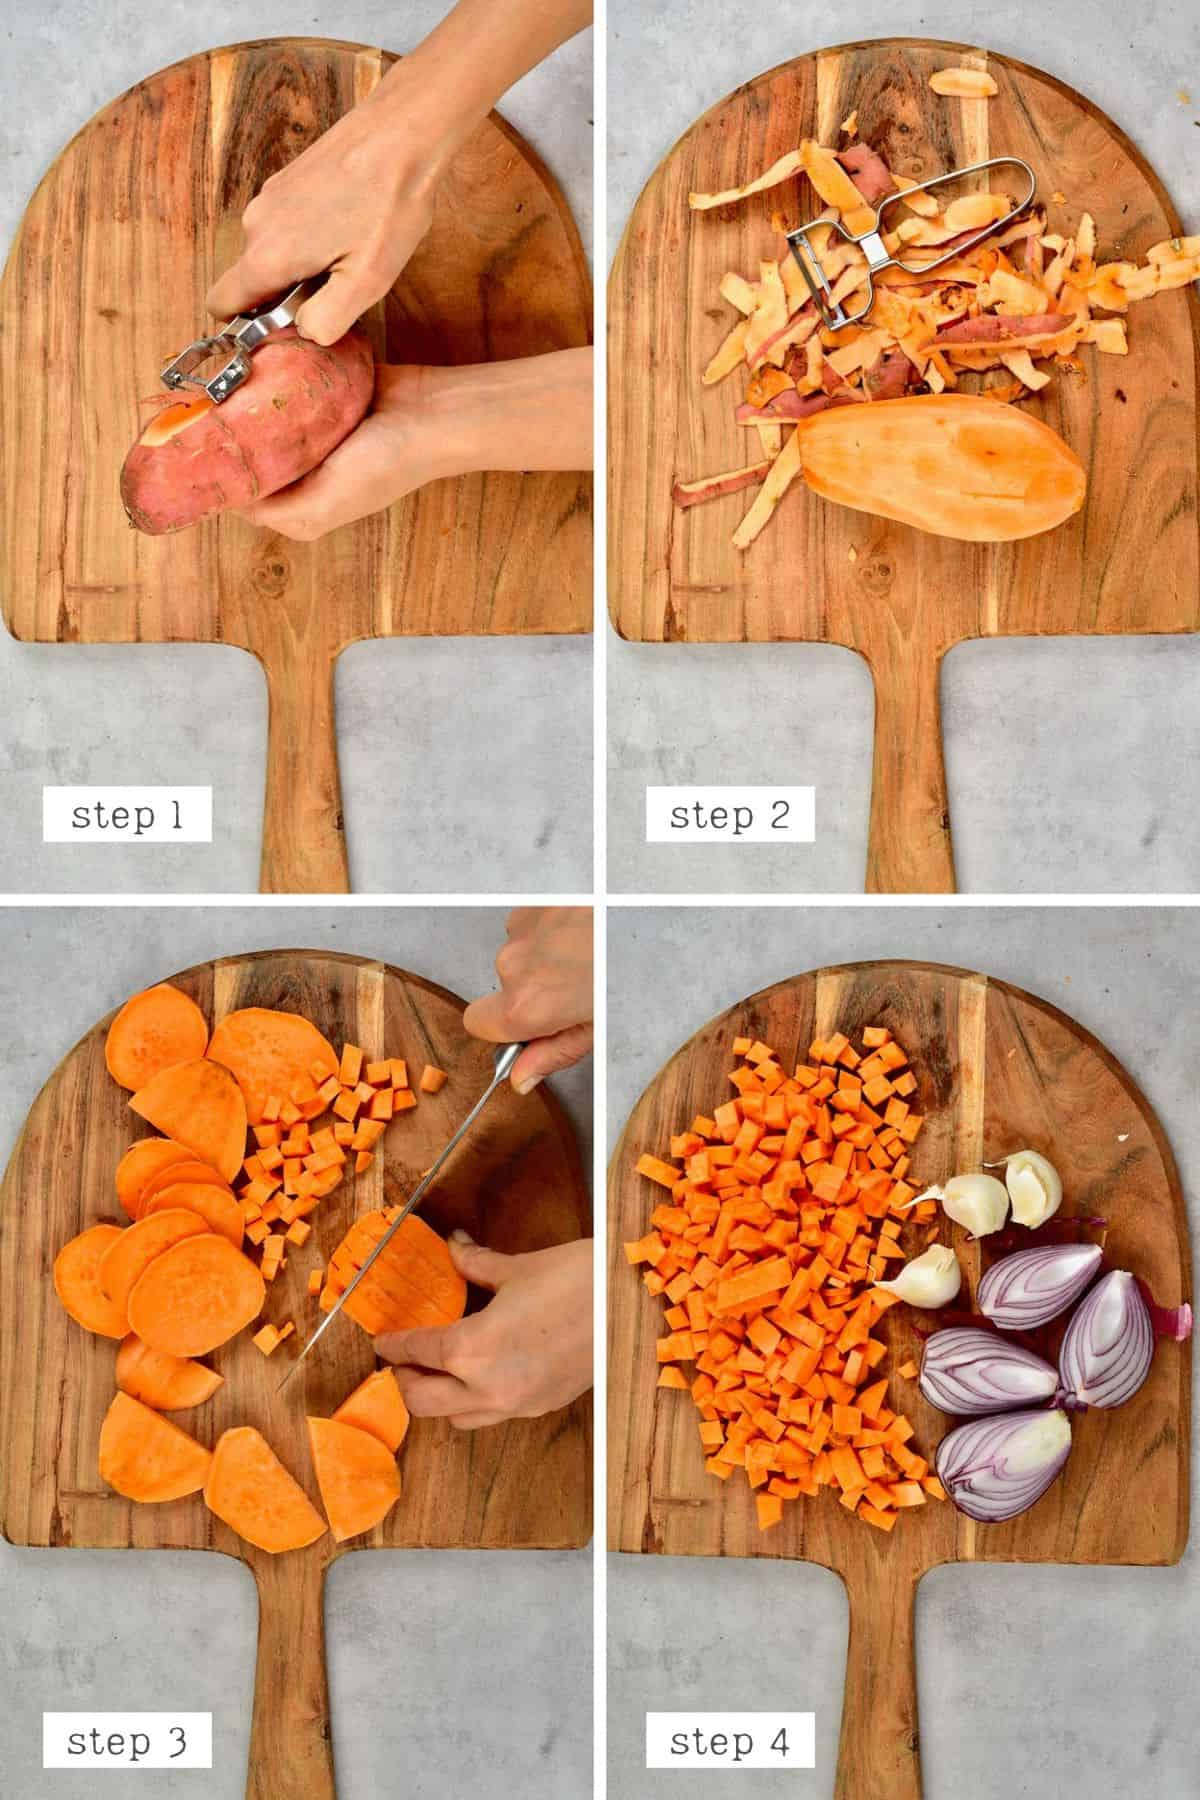 Steps for chopping sweet potato garlic and onion